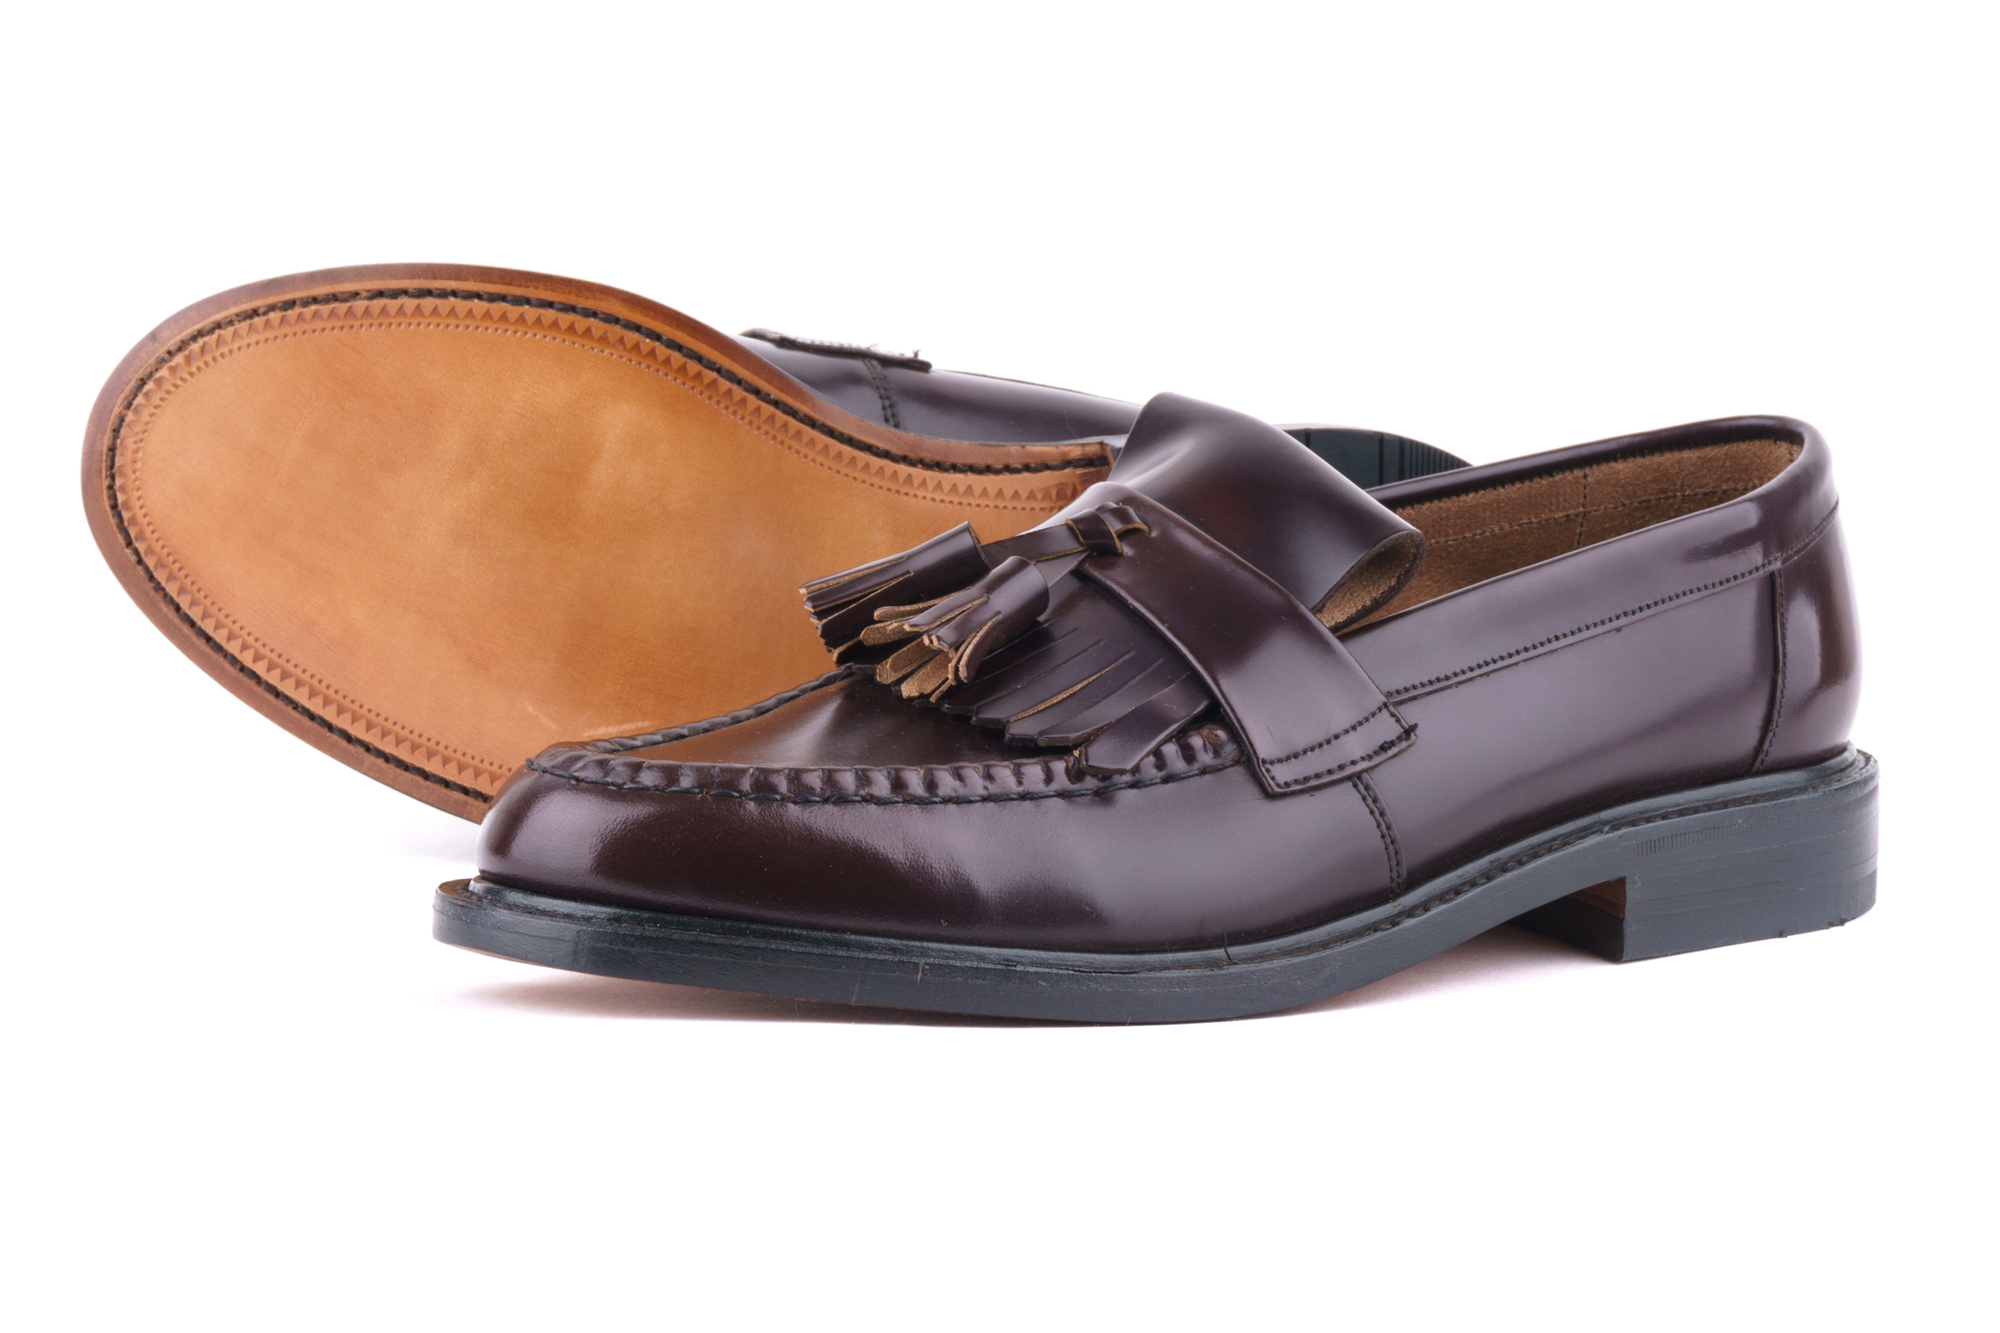 фото Лоферы Loake, Brighton oxblood от магазина MENSHOES